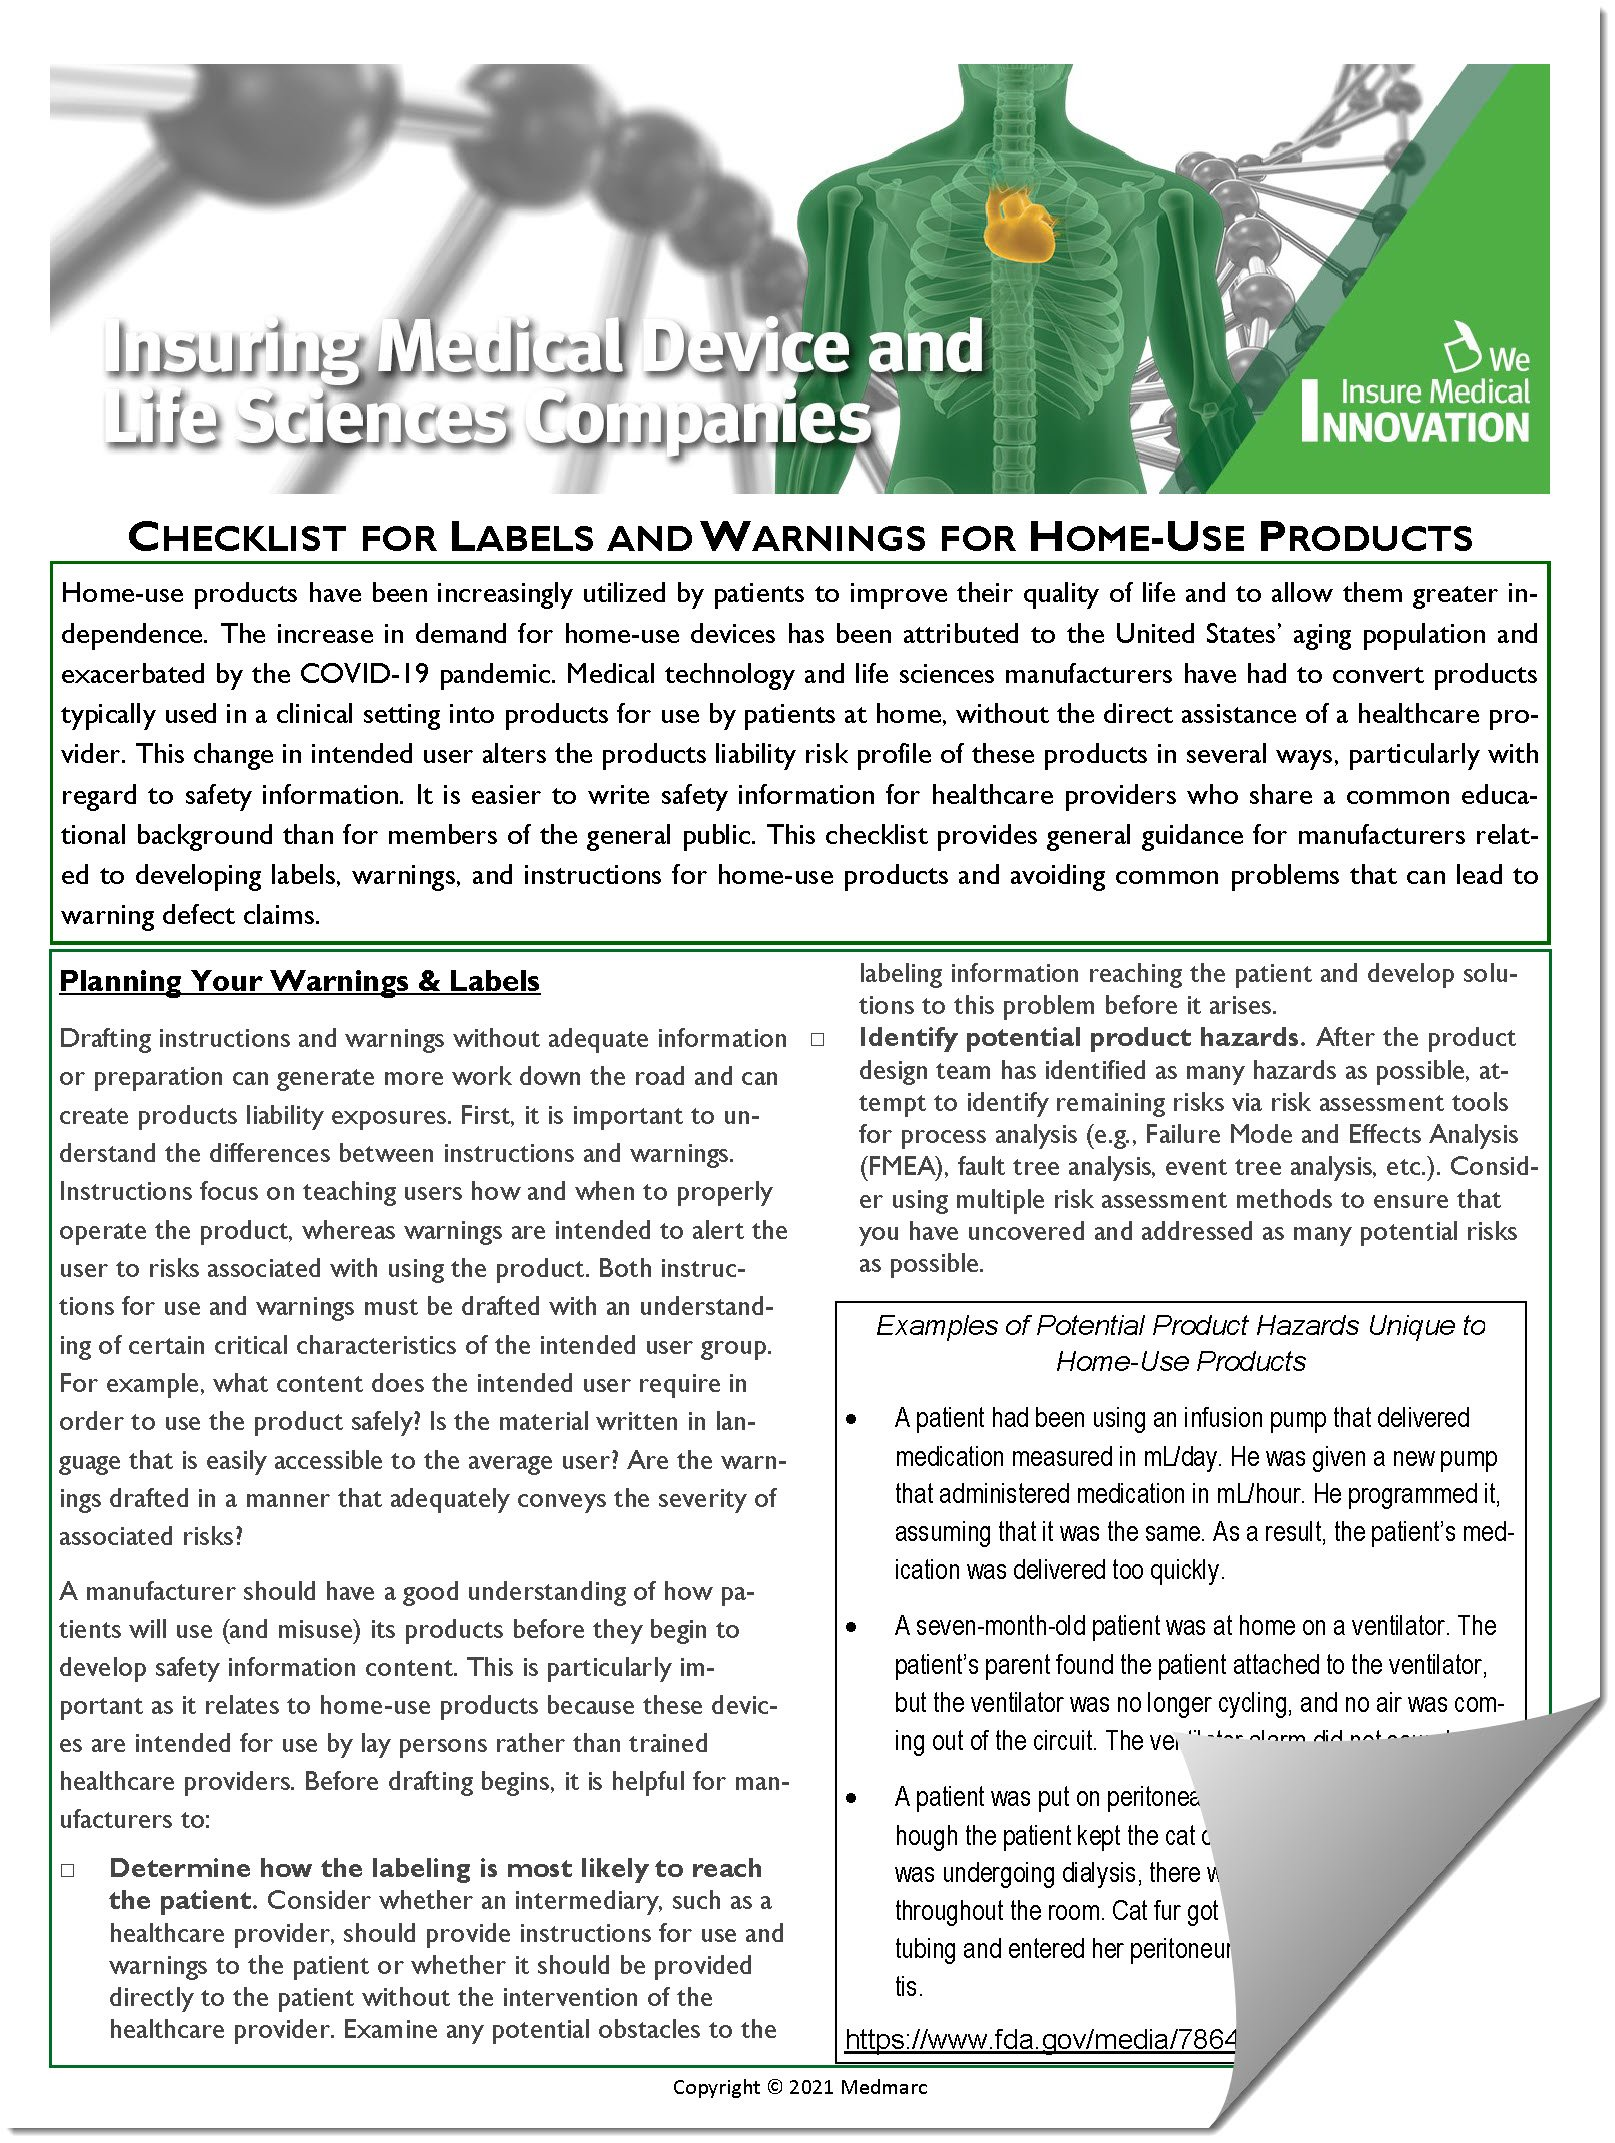 Checklist for Safety Information for Home-Use Products